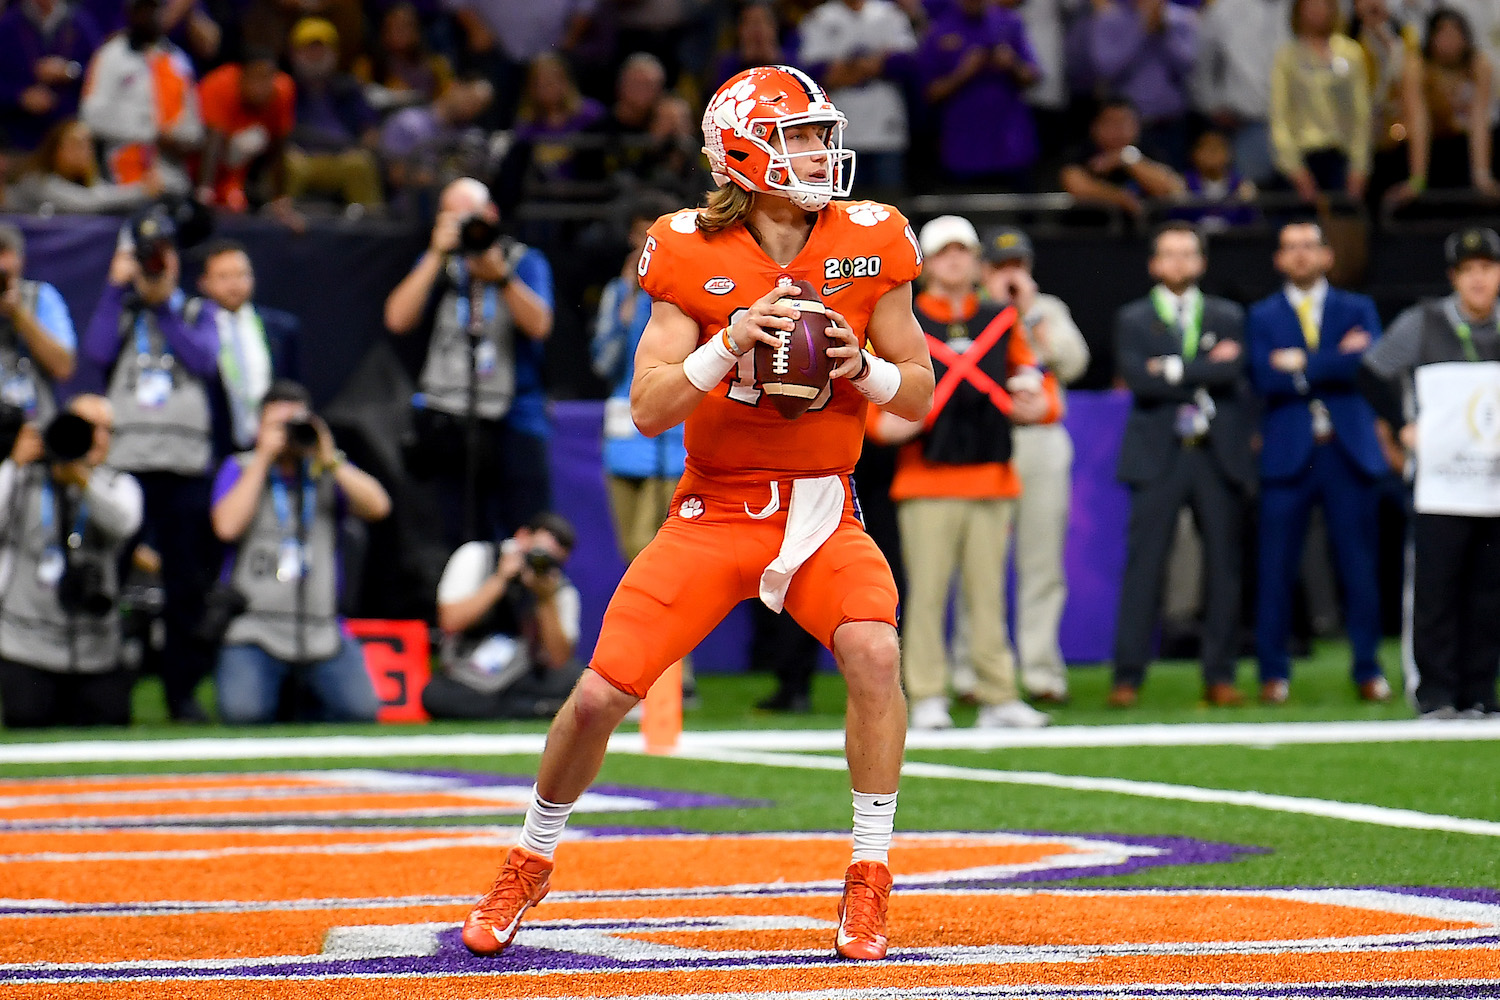 Trevor Lawrence Would Make $2.4 Million a Season According to New Report